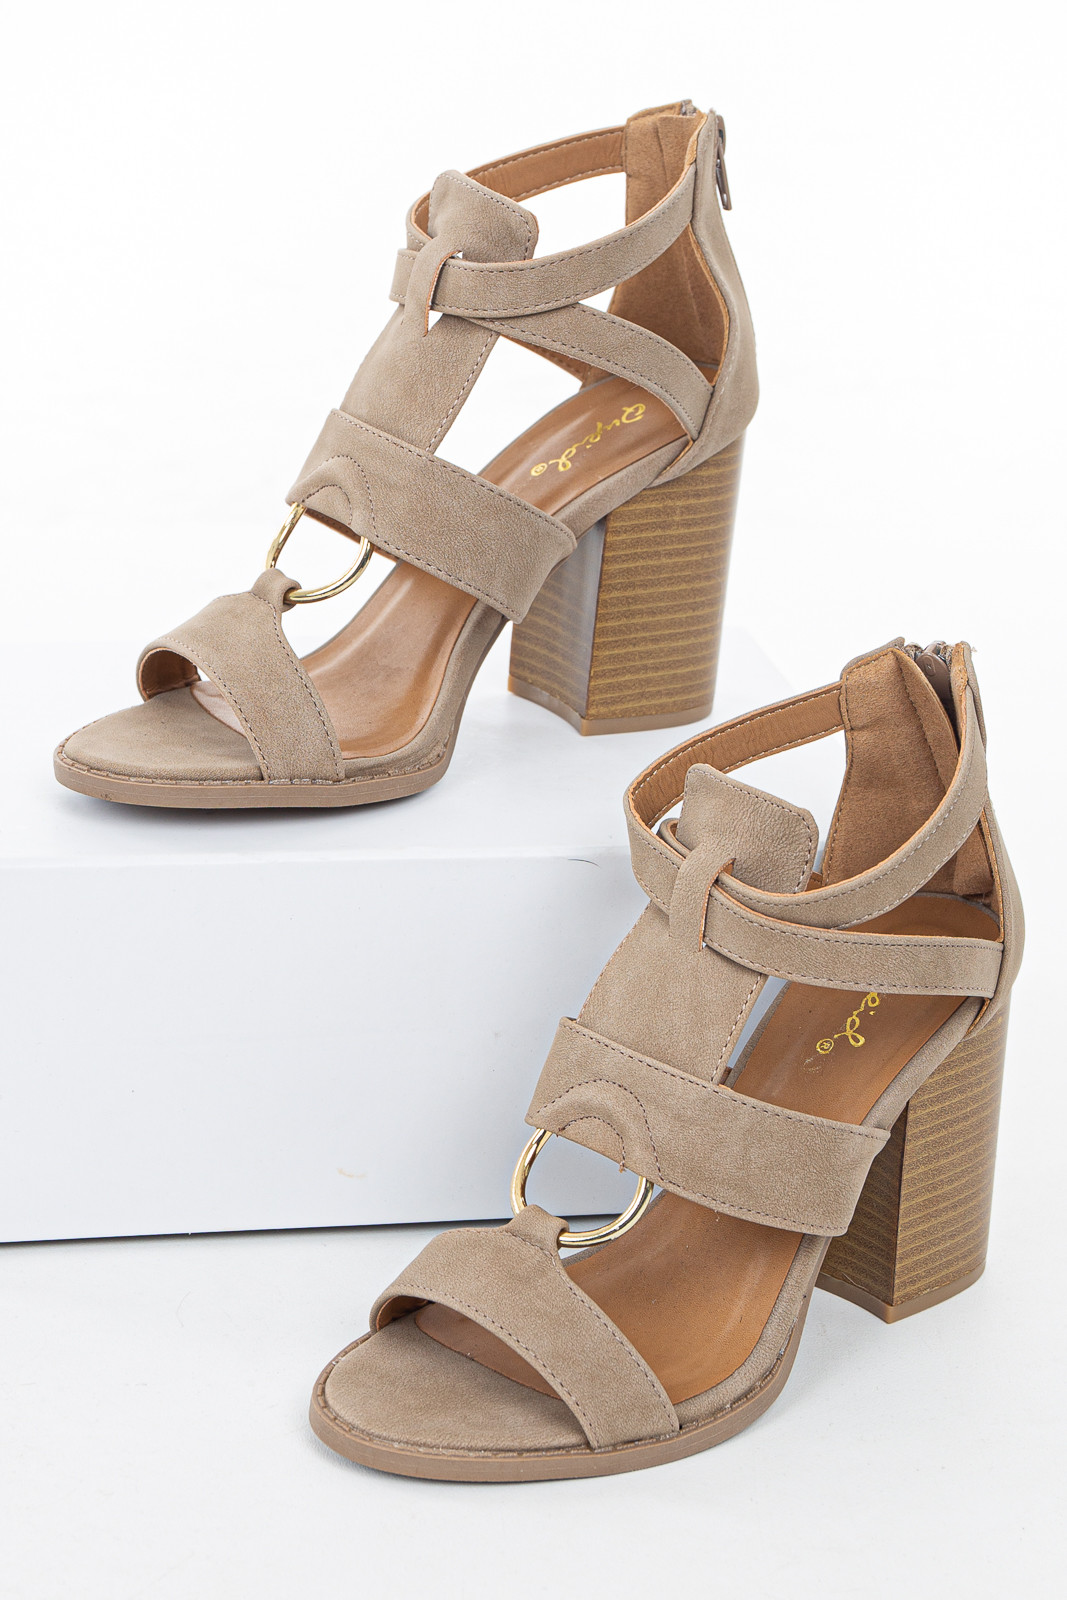 Beige Faux Leather Strappy High Heel with Gold Ring Detail